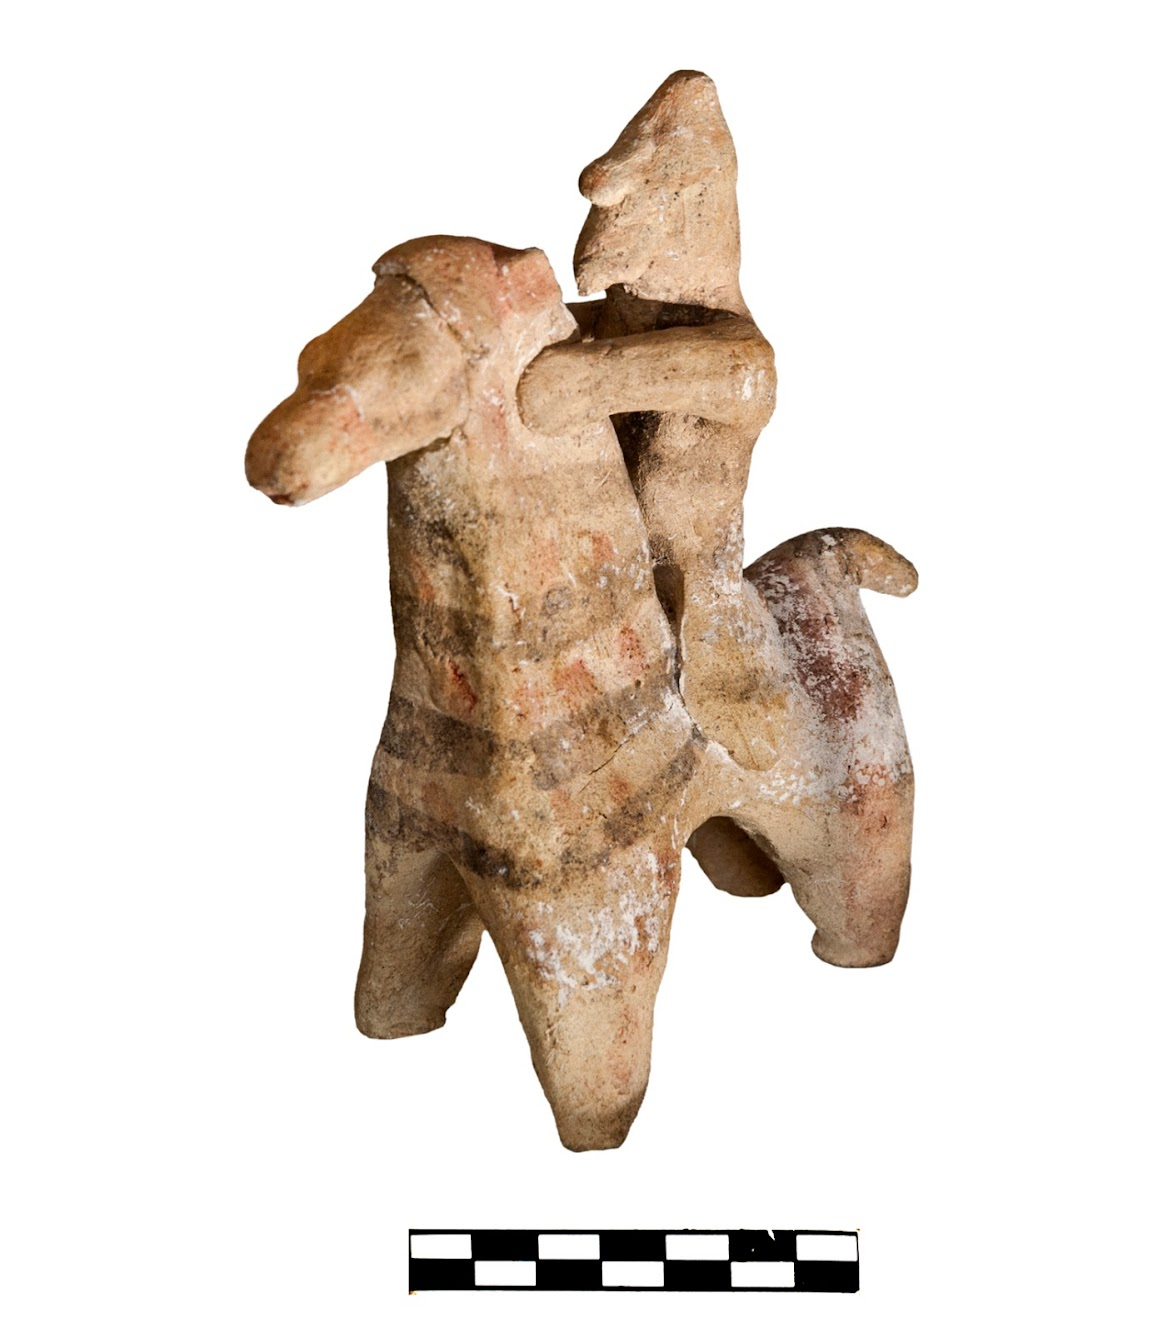 Southern Europe: Ancient clay figurine repatriated to Cyprus from UK